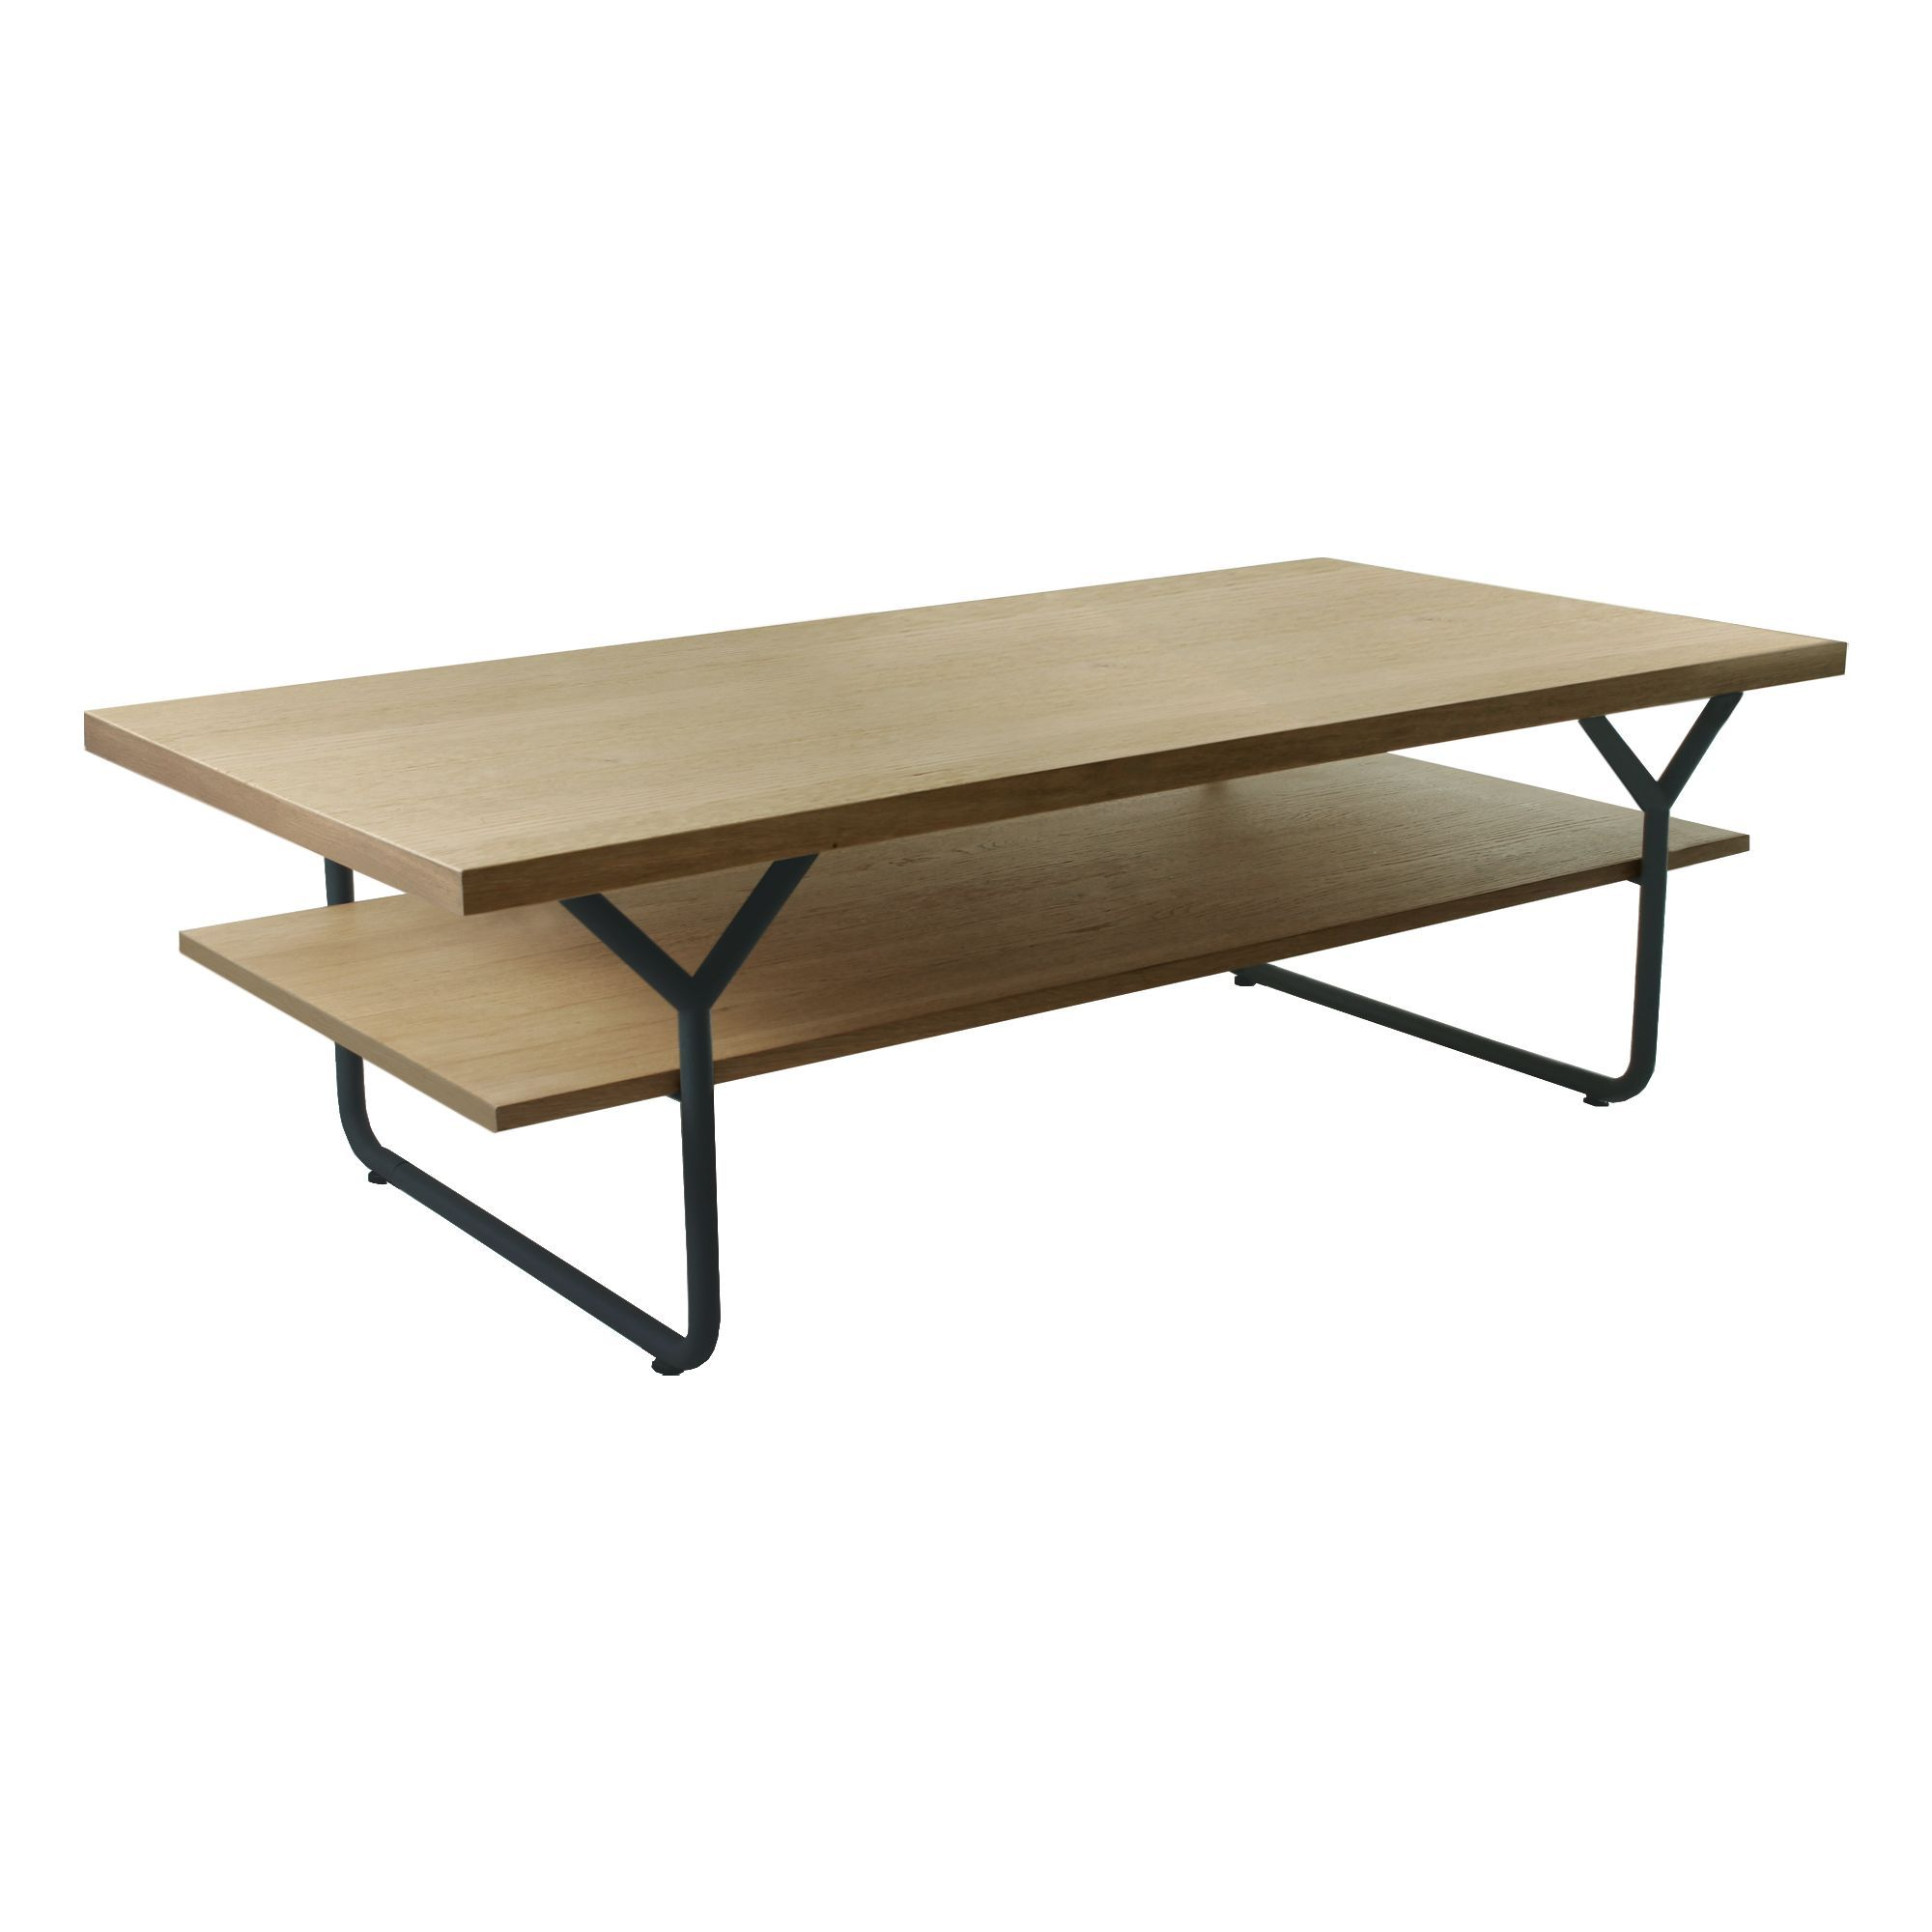 aff8fb3f428629b80bcca1e1cf6c994b Frais De Table Basse Grande Taille